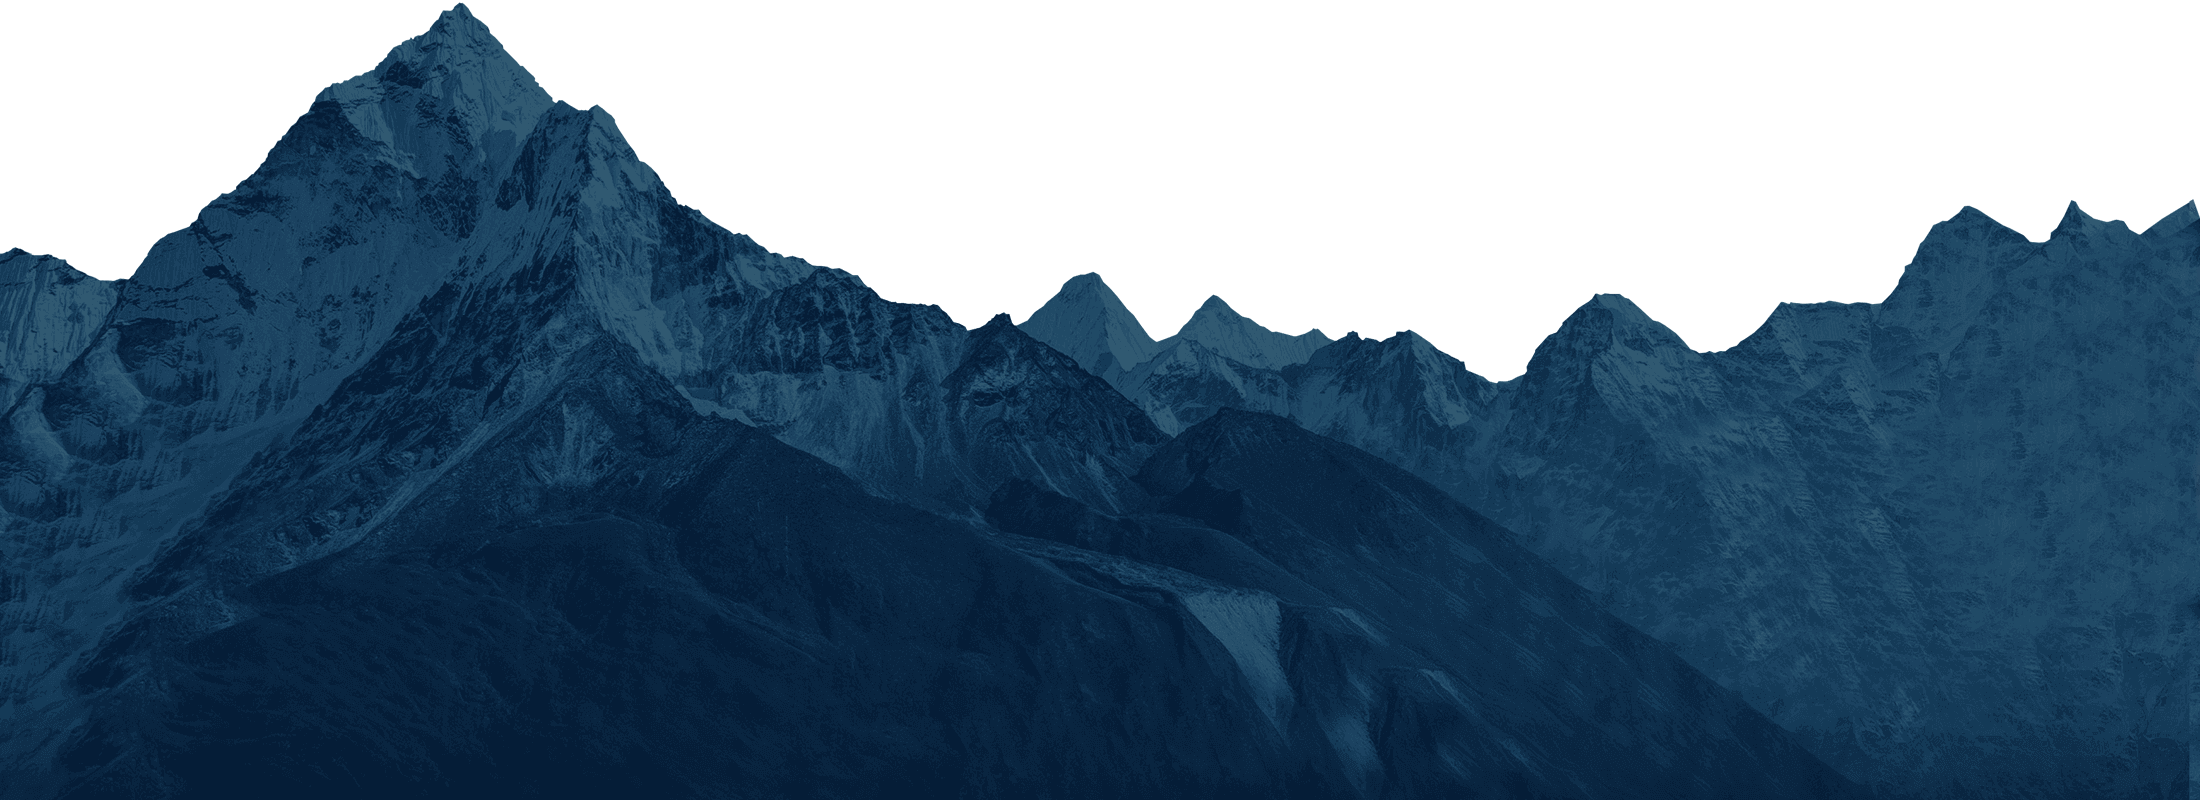 Mountain range png. Index of images service